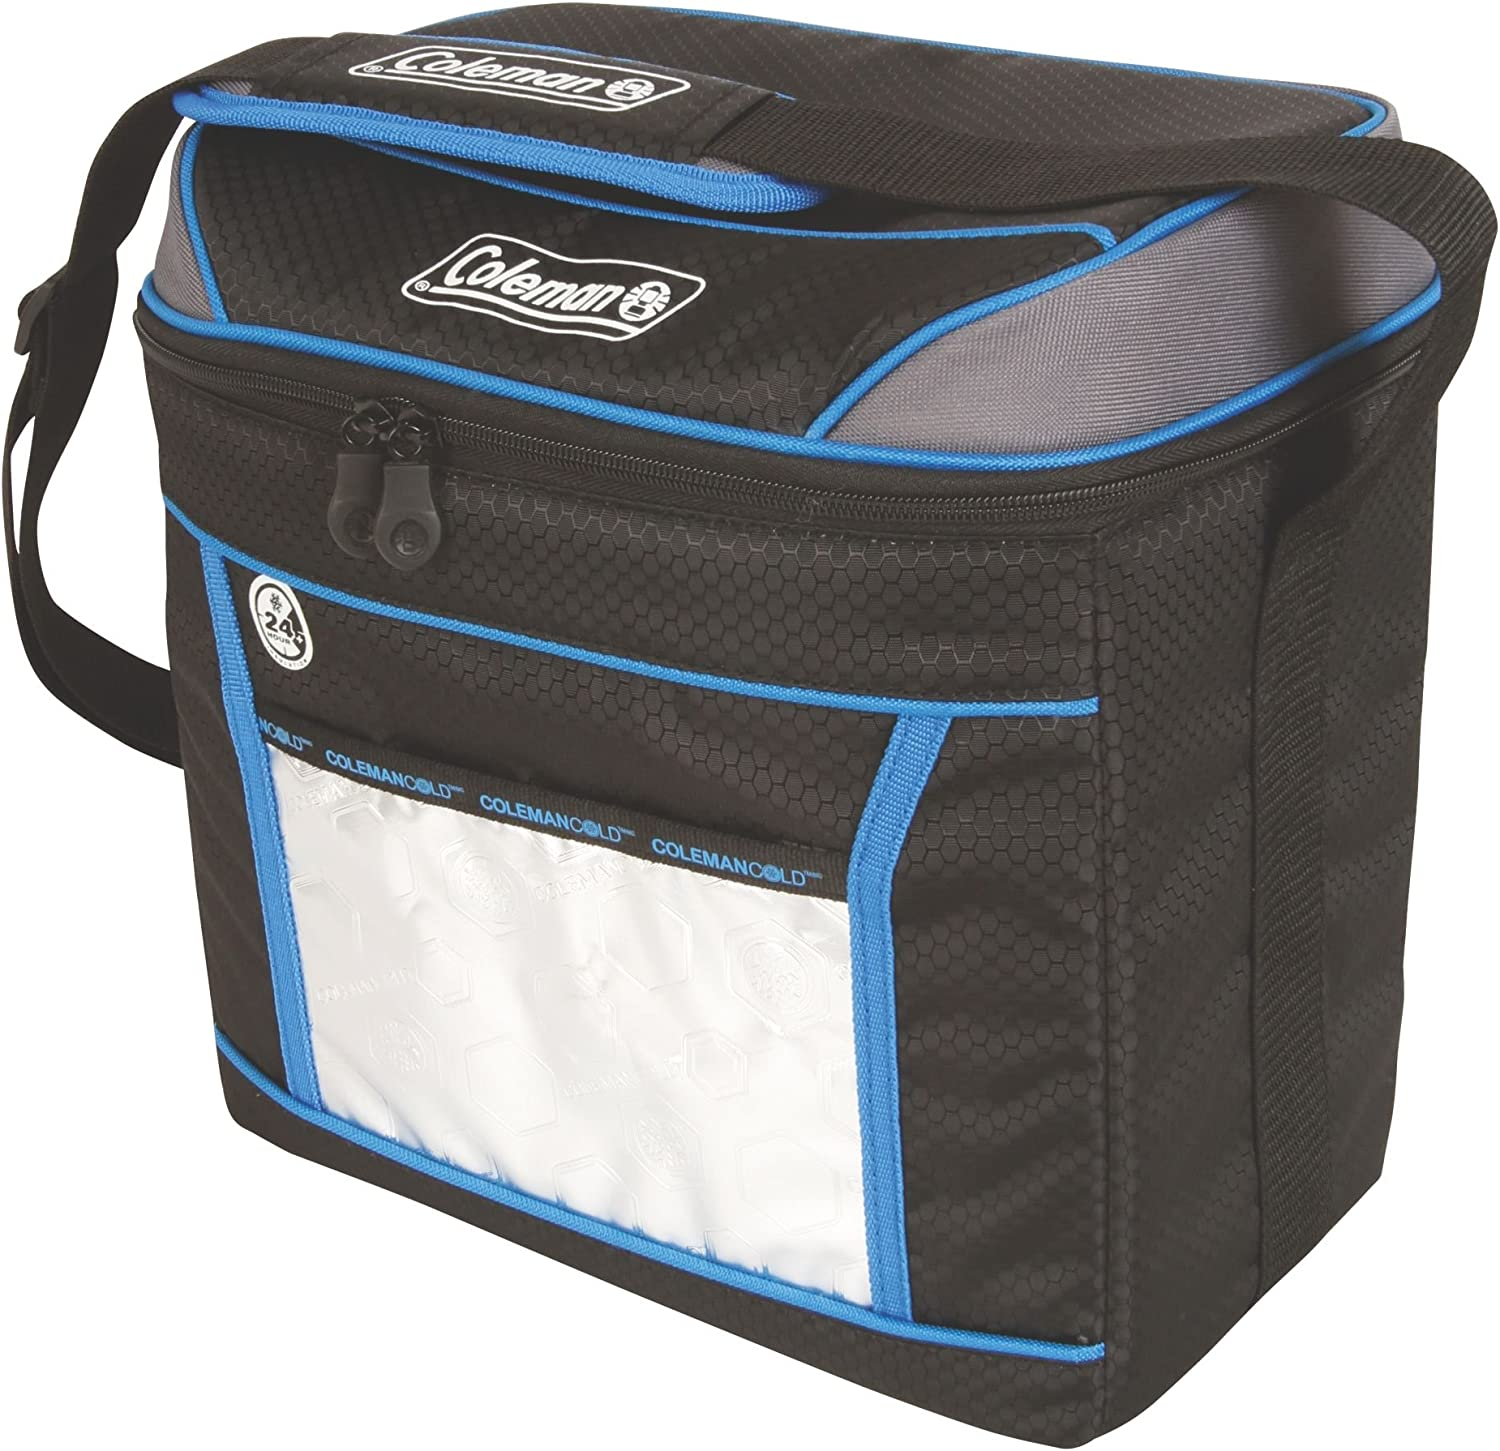 Coleman, Soft Cooler, 9 Cans, Blue